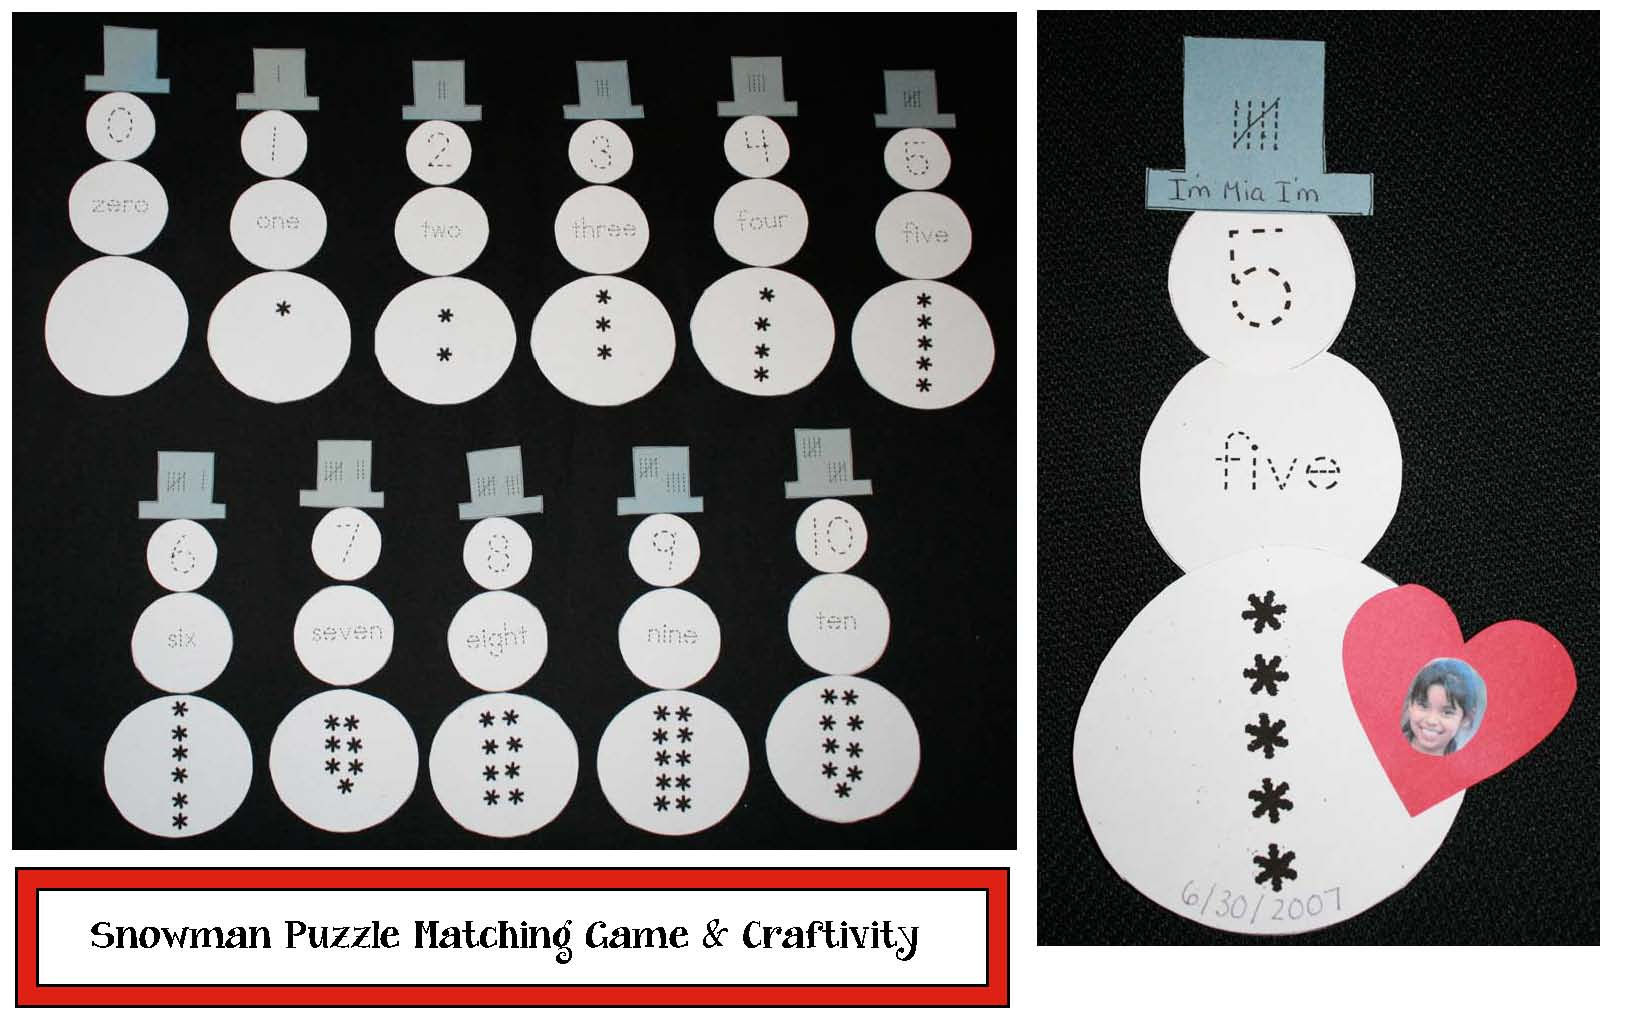 snowman activities, snowman crafts, alphabet activities, alphabet games, number games, math activities, math centers, math games, small medium large activities, winter arts and crafts, winter word games, snowman puzzles, number puzzles, inter crafts, snowman crafts